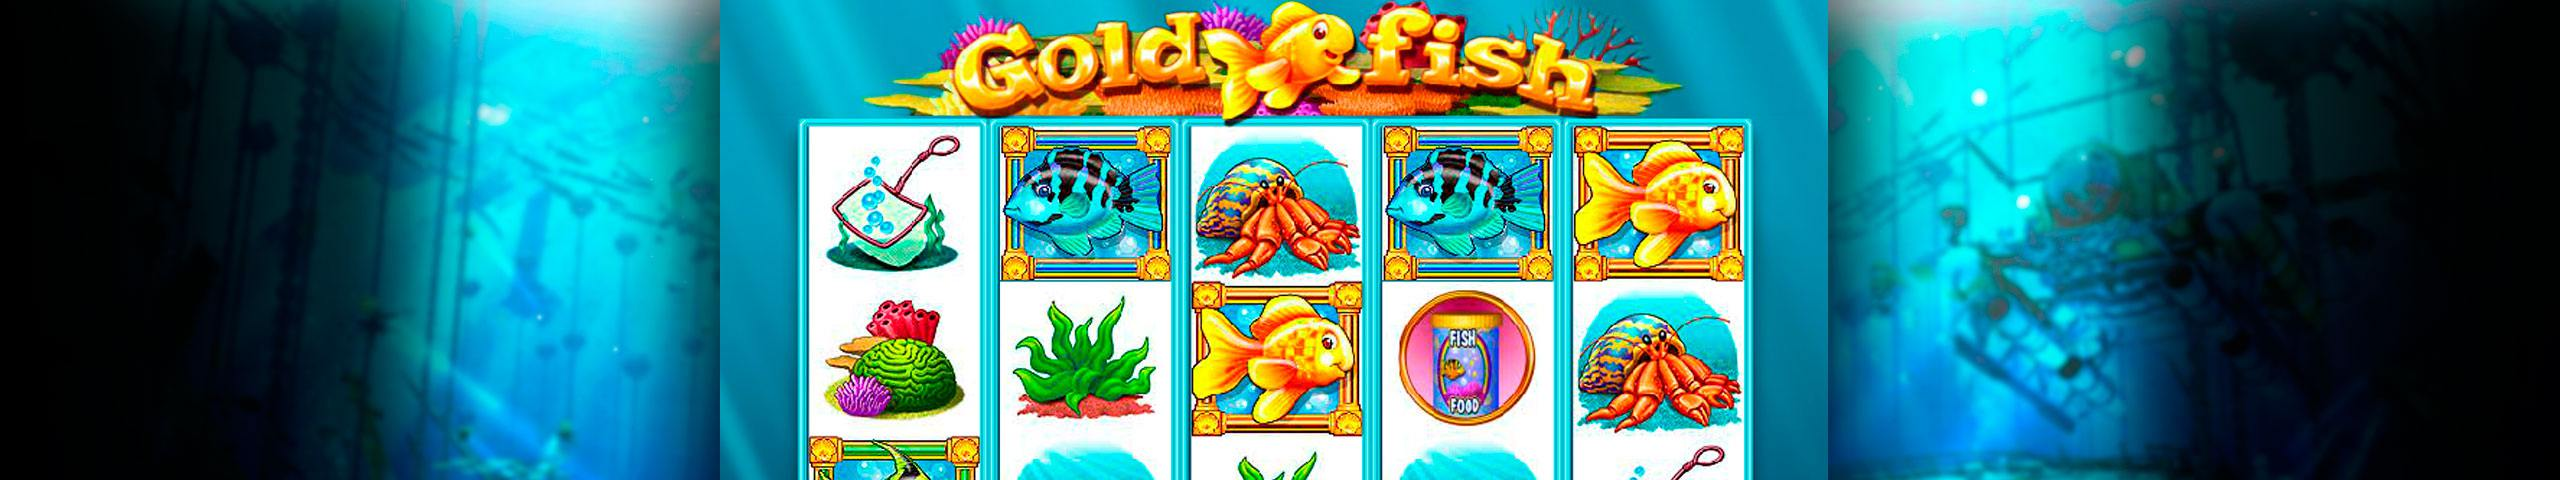 Goldfish spelautomater WMS (Williams Interactive)  wyrmspel.com